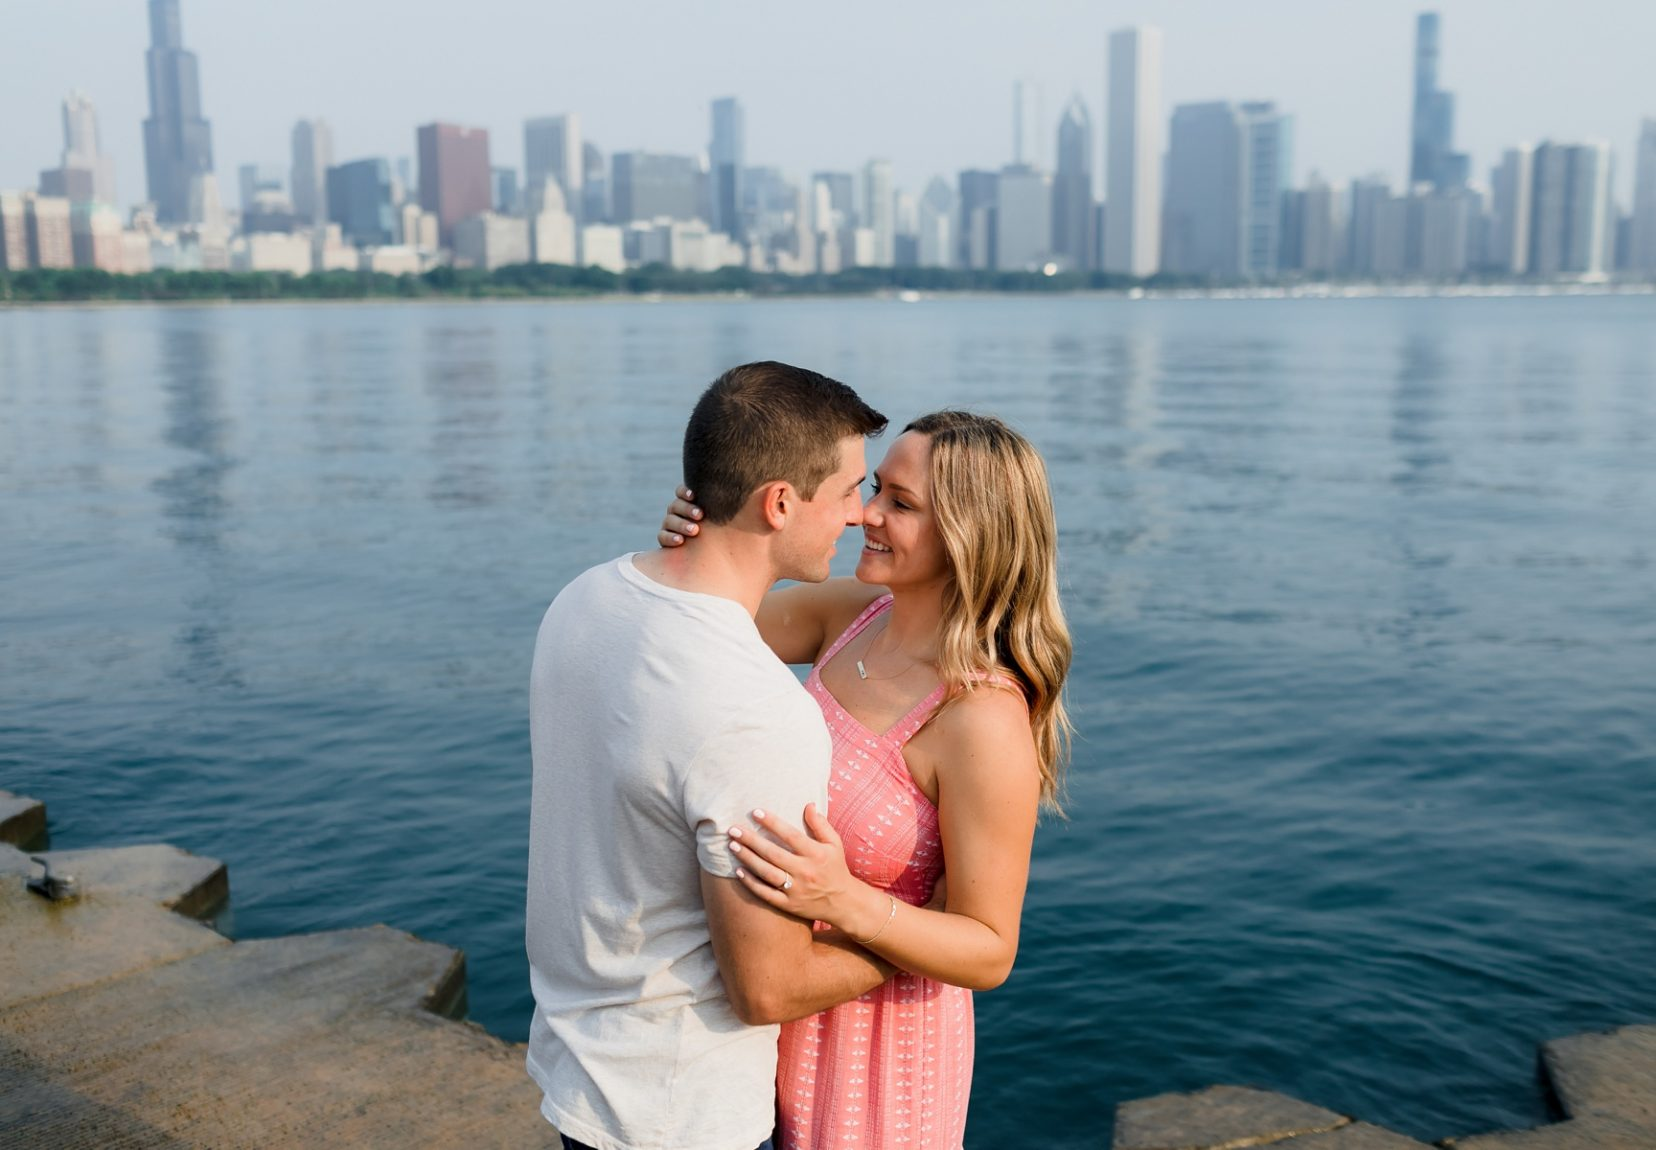 Chicago Skyline Sunrise Engagement Photos | Colleen and Alec